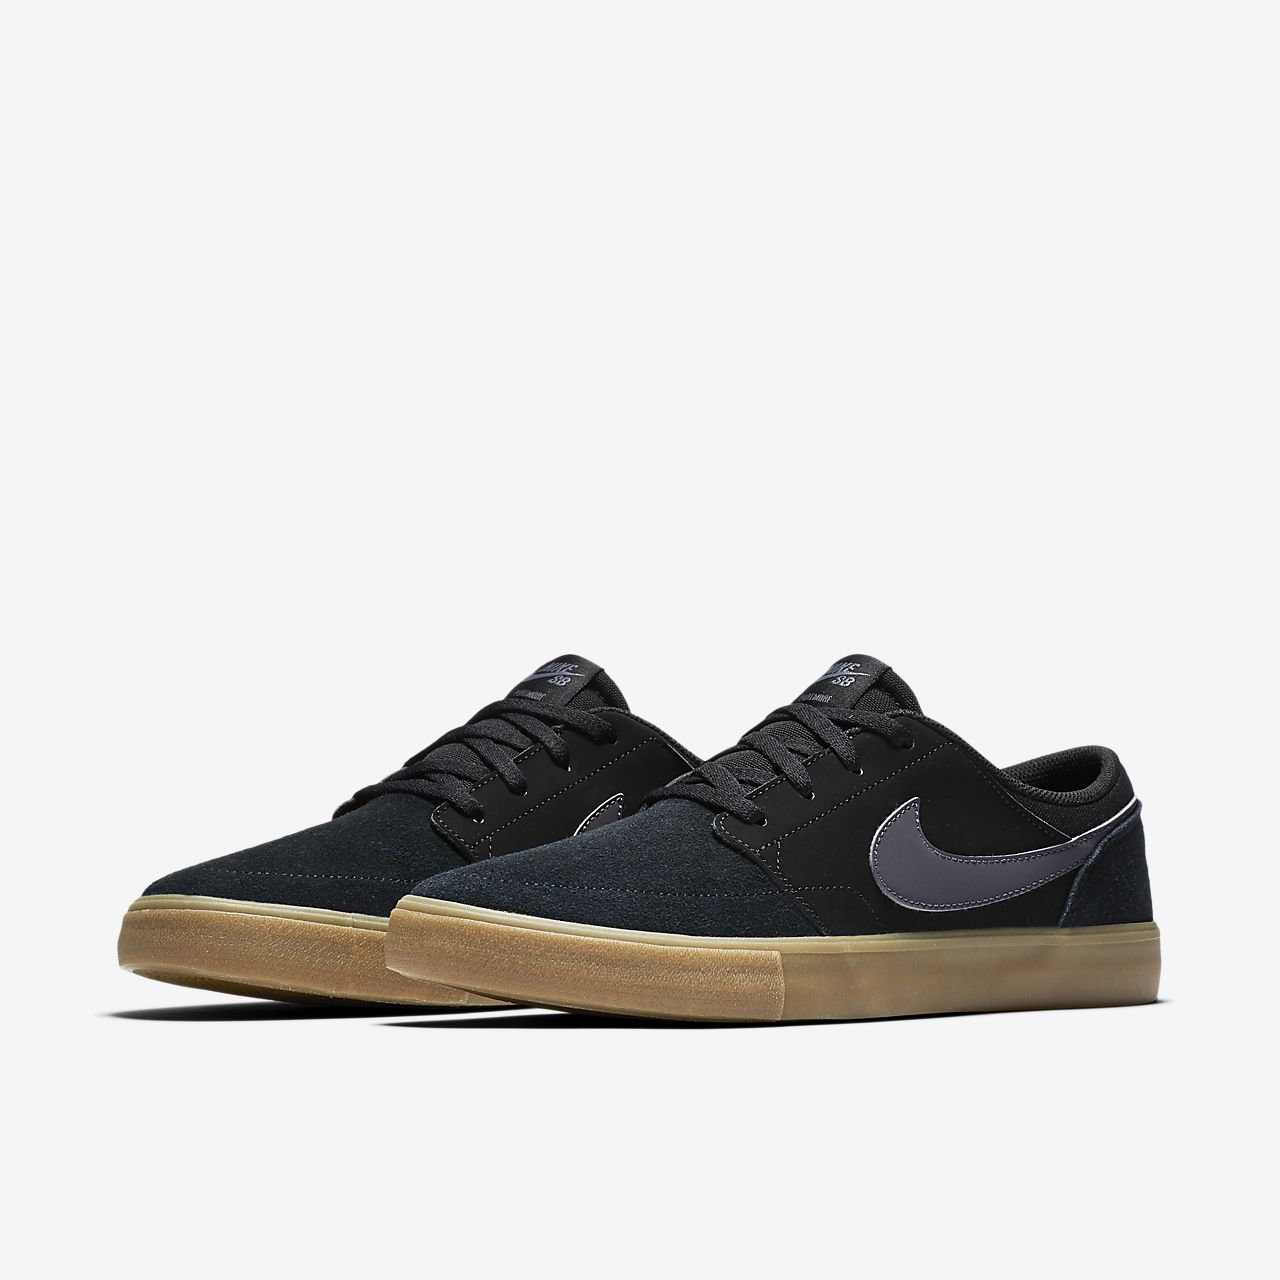 7e335be883 Nike SB Solarsoft Portmore II Men's Skateboarding Shoe. Nike.com IN